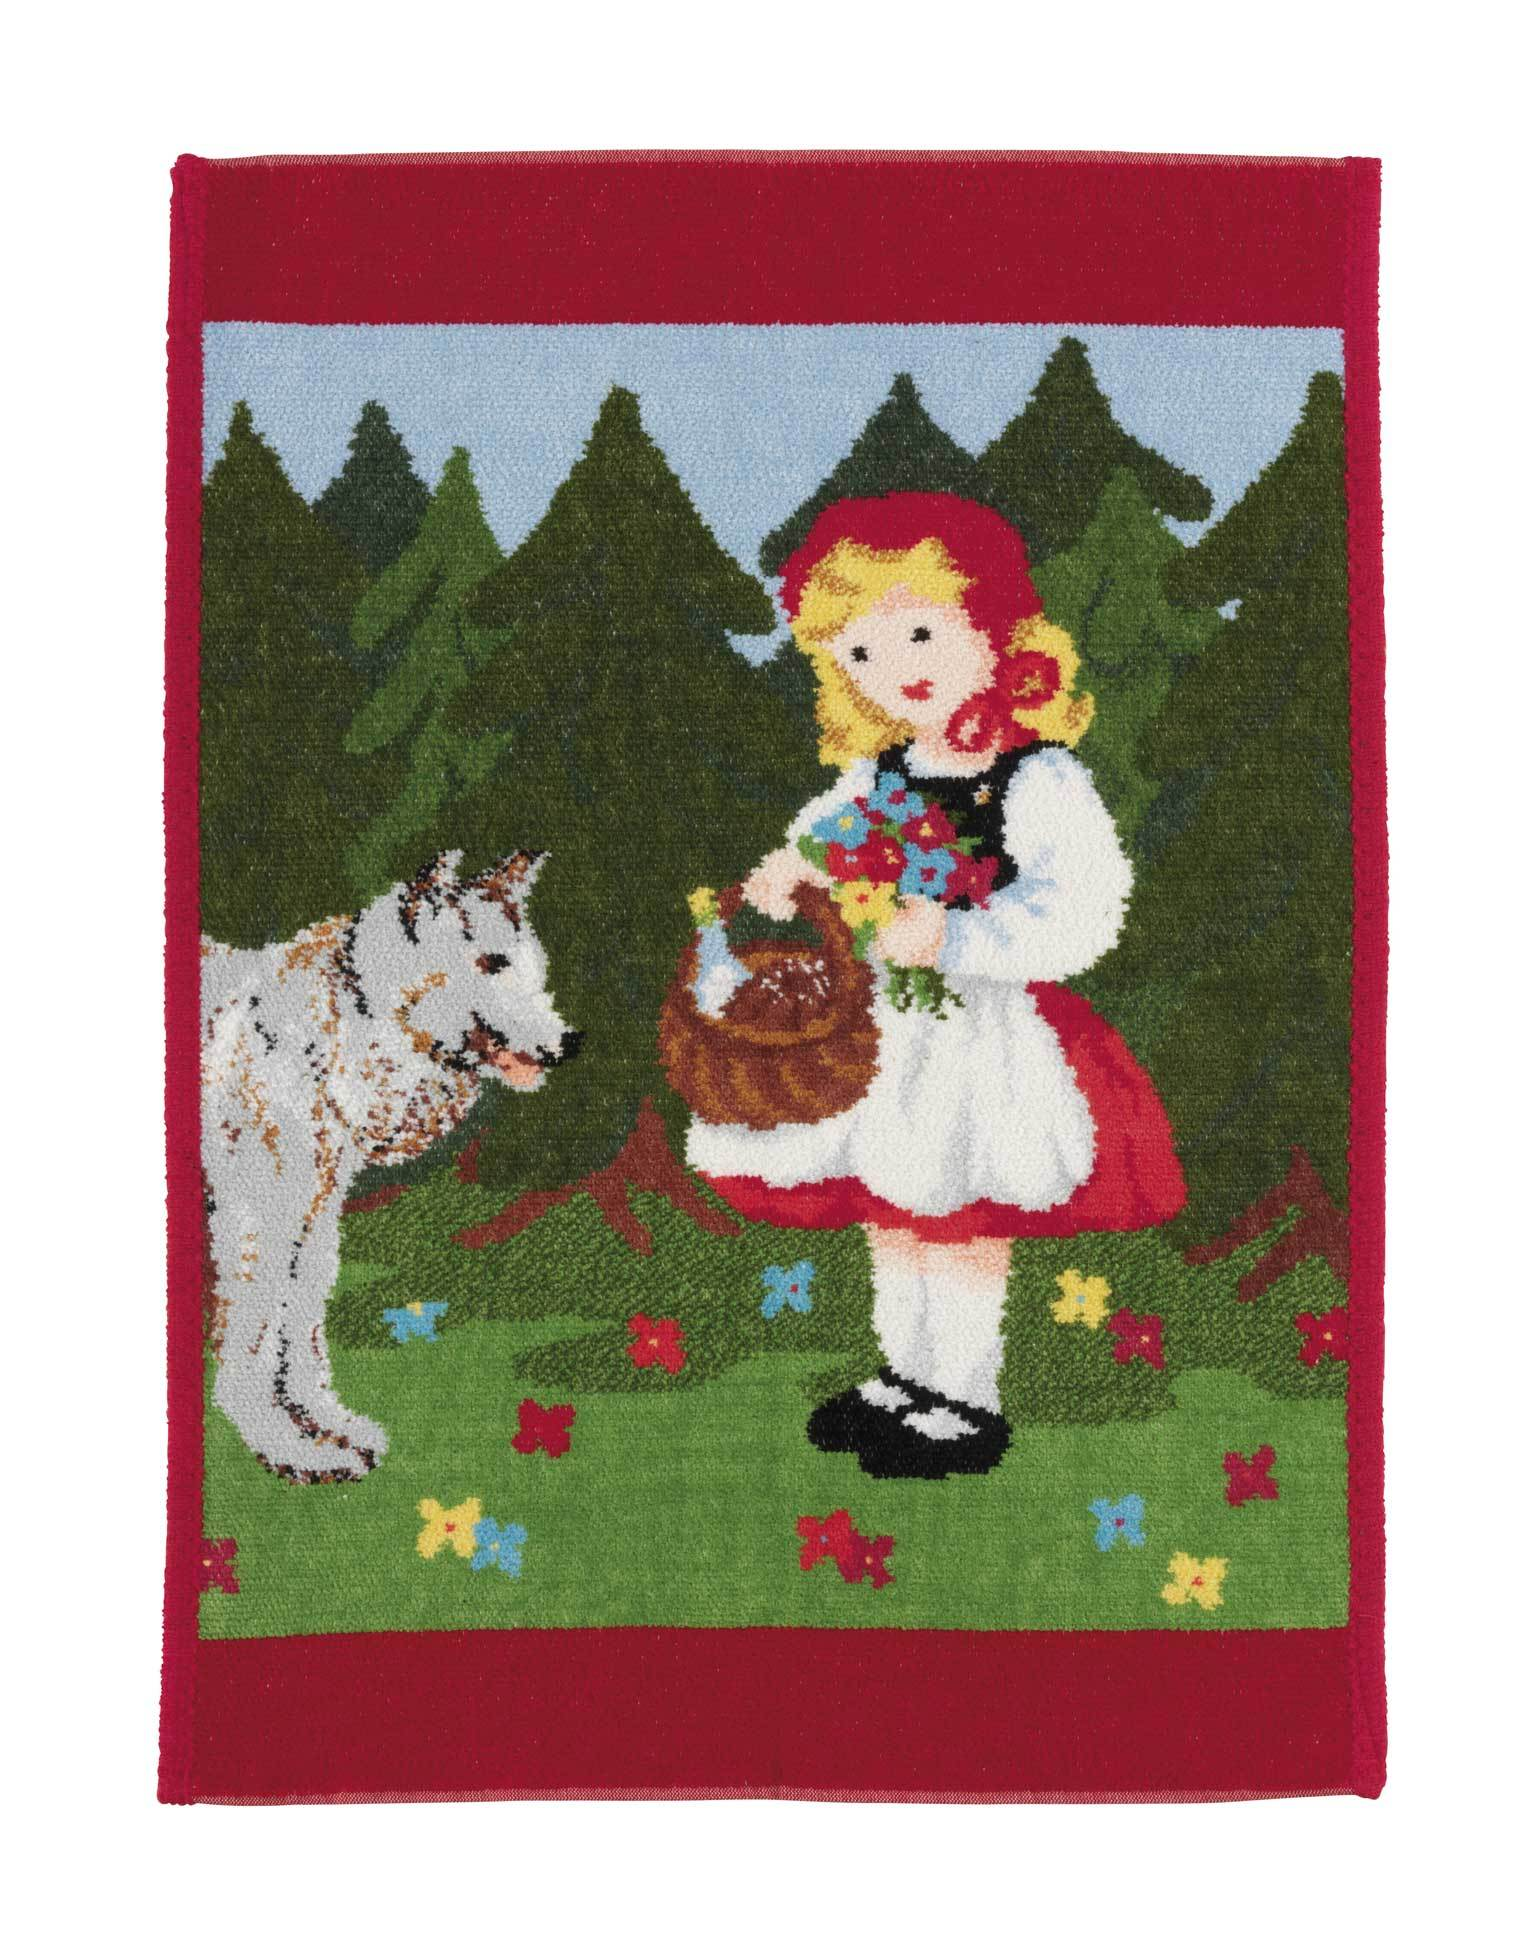 Полотенца Полотенце детское 37x50 Feiler Marchen Little Red Riding Hood 120 красное elitnoe-polotentse-detskoe-shenillovoe-marchen-little-red-riding-hood-120-krasnoe-ot-feiler-germ.jpg